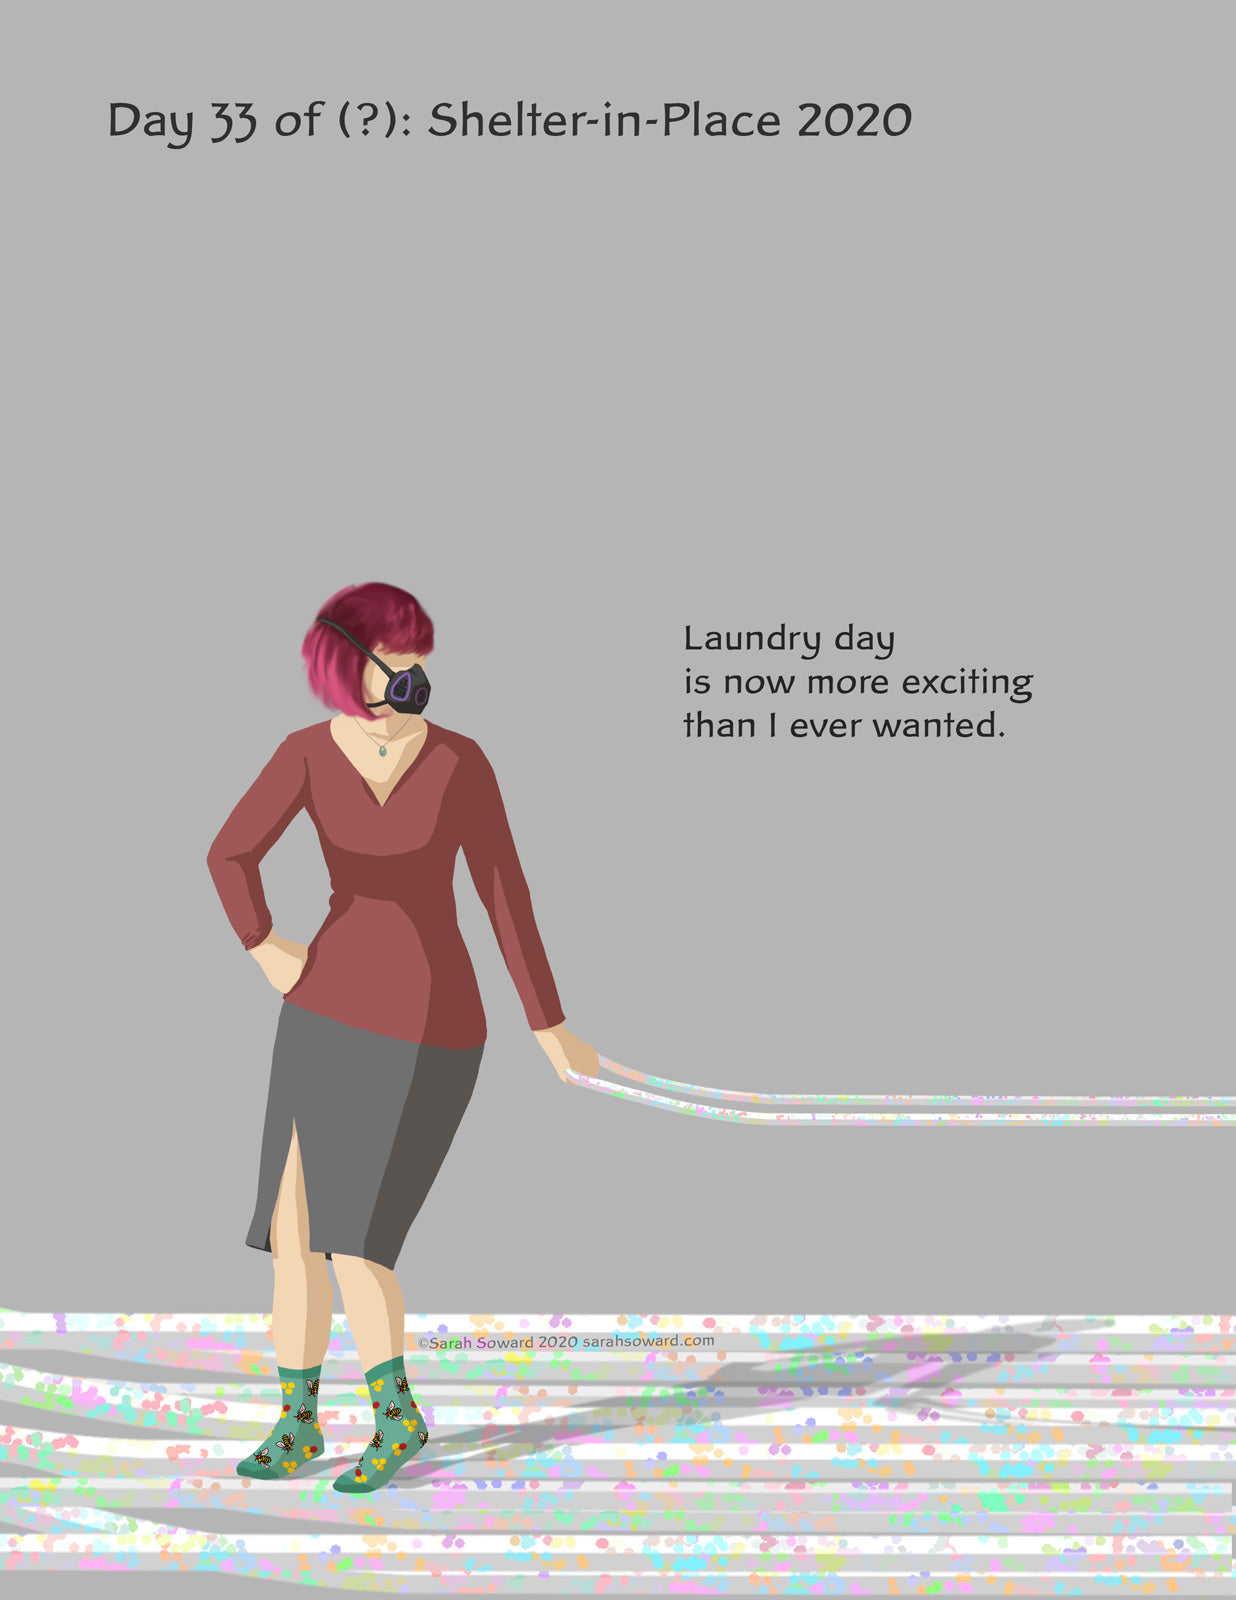 A woman with a face mask on stands on a speckled and uneven floor holding a line to something off the image--it's the laundry basket. The text on the image reads  Laundry day is now more exciting than I ever wanted.